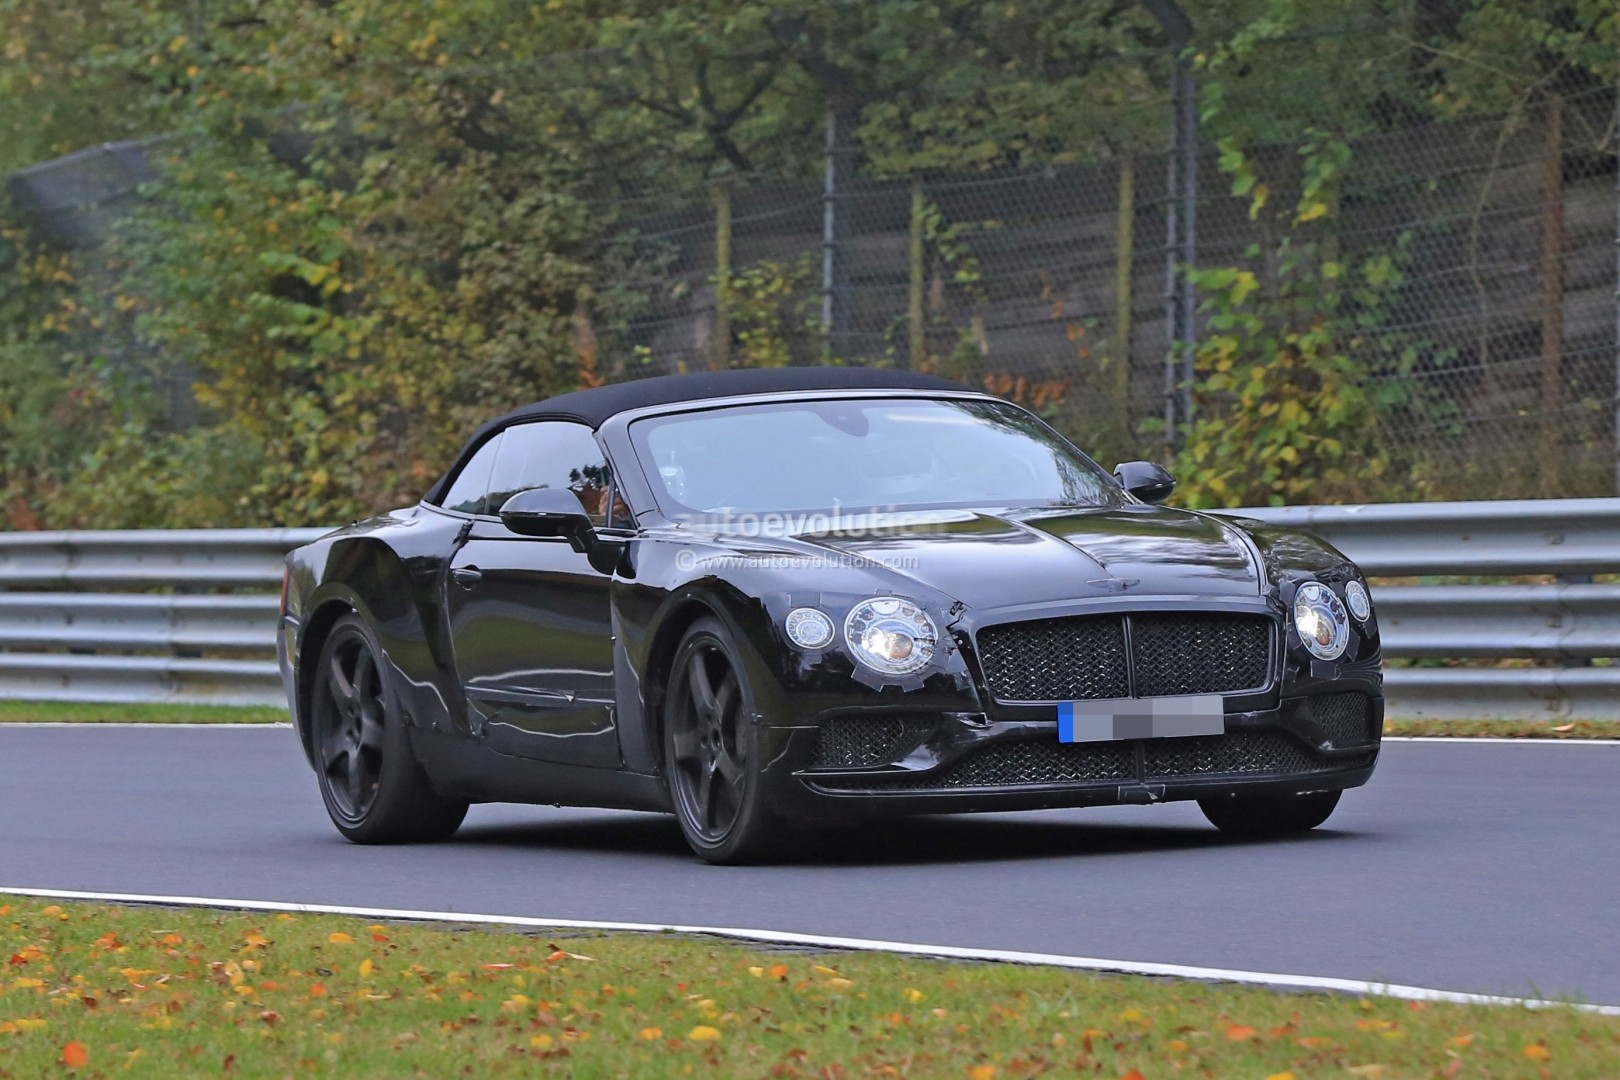 2017 - [Bentley] Continental GT - Page 2 2018-bentley-continental-gt-convertible-shows-wide-stance-on-nurburgring_11